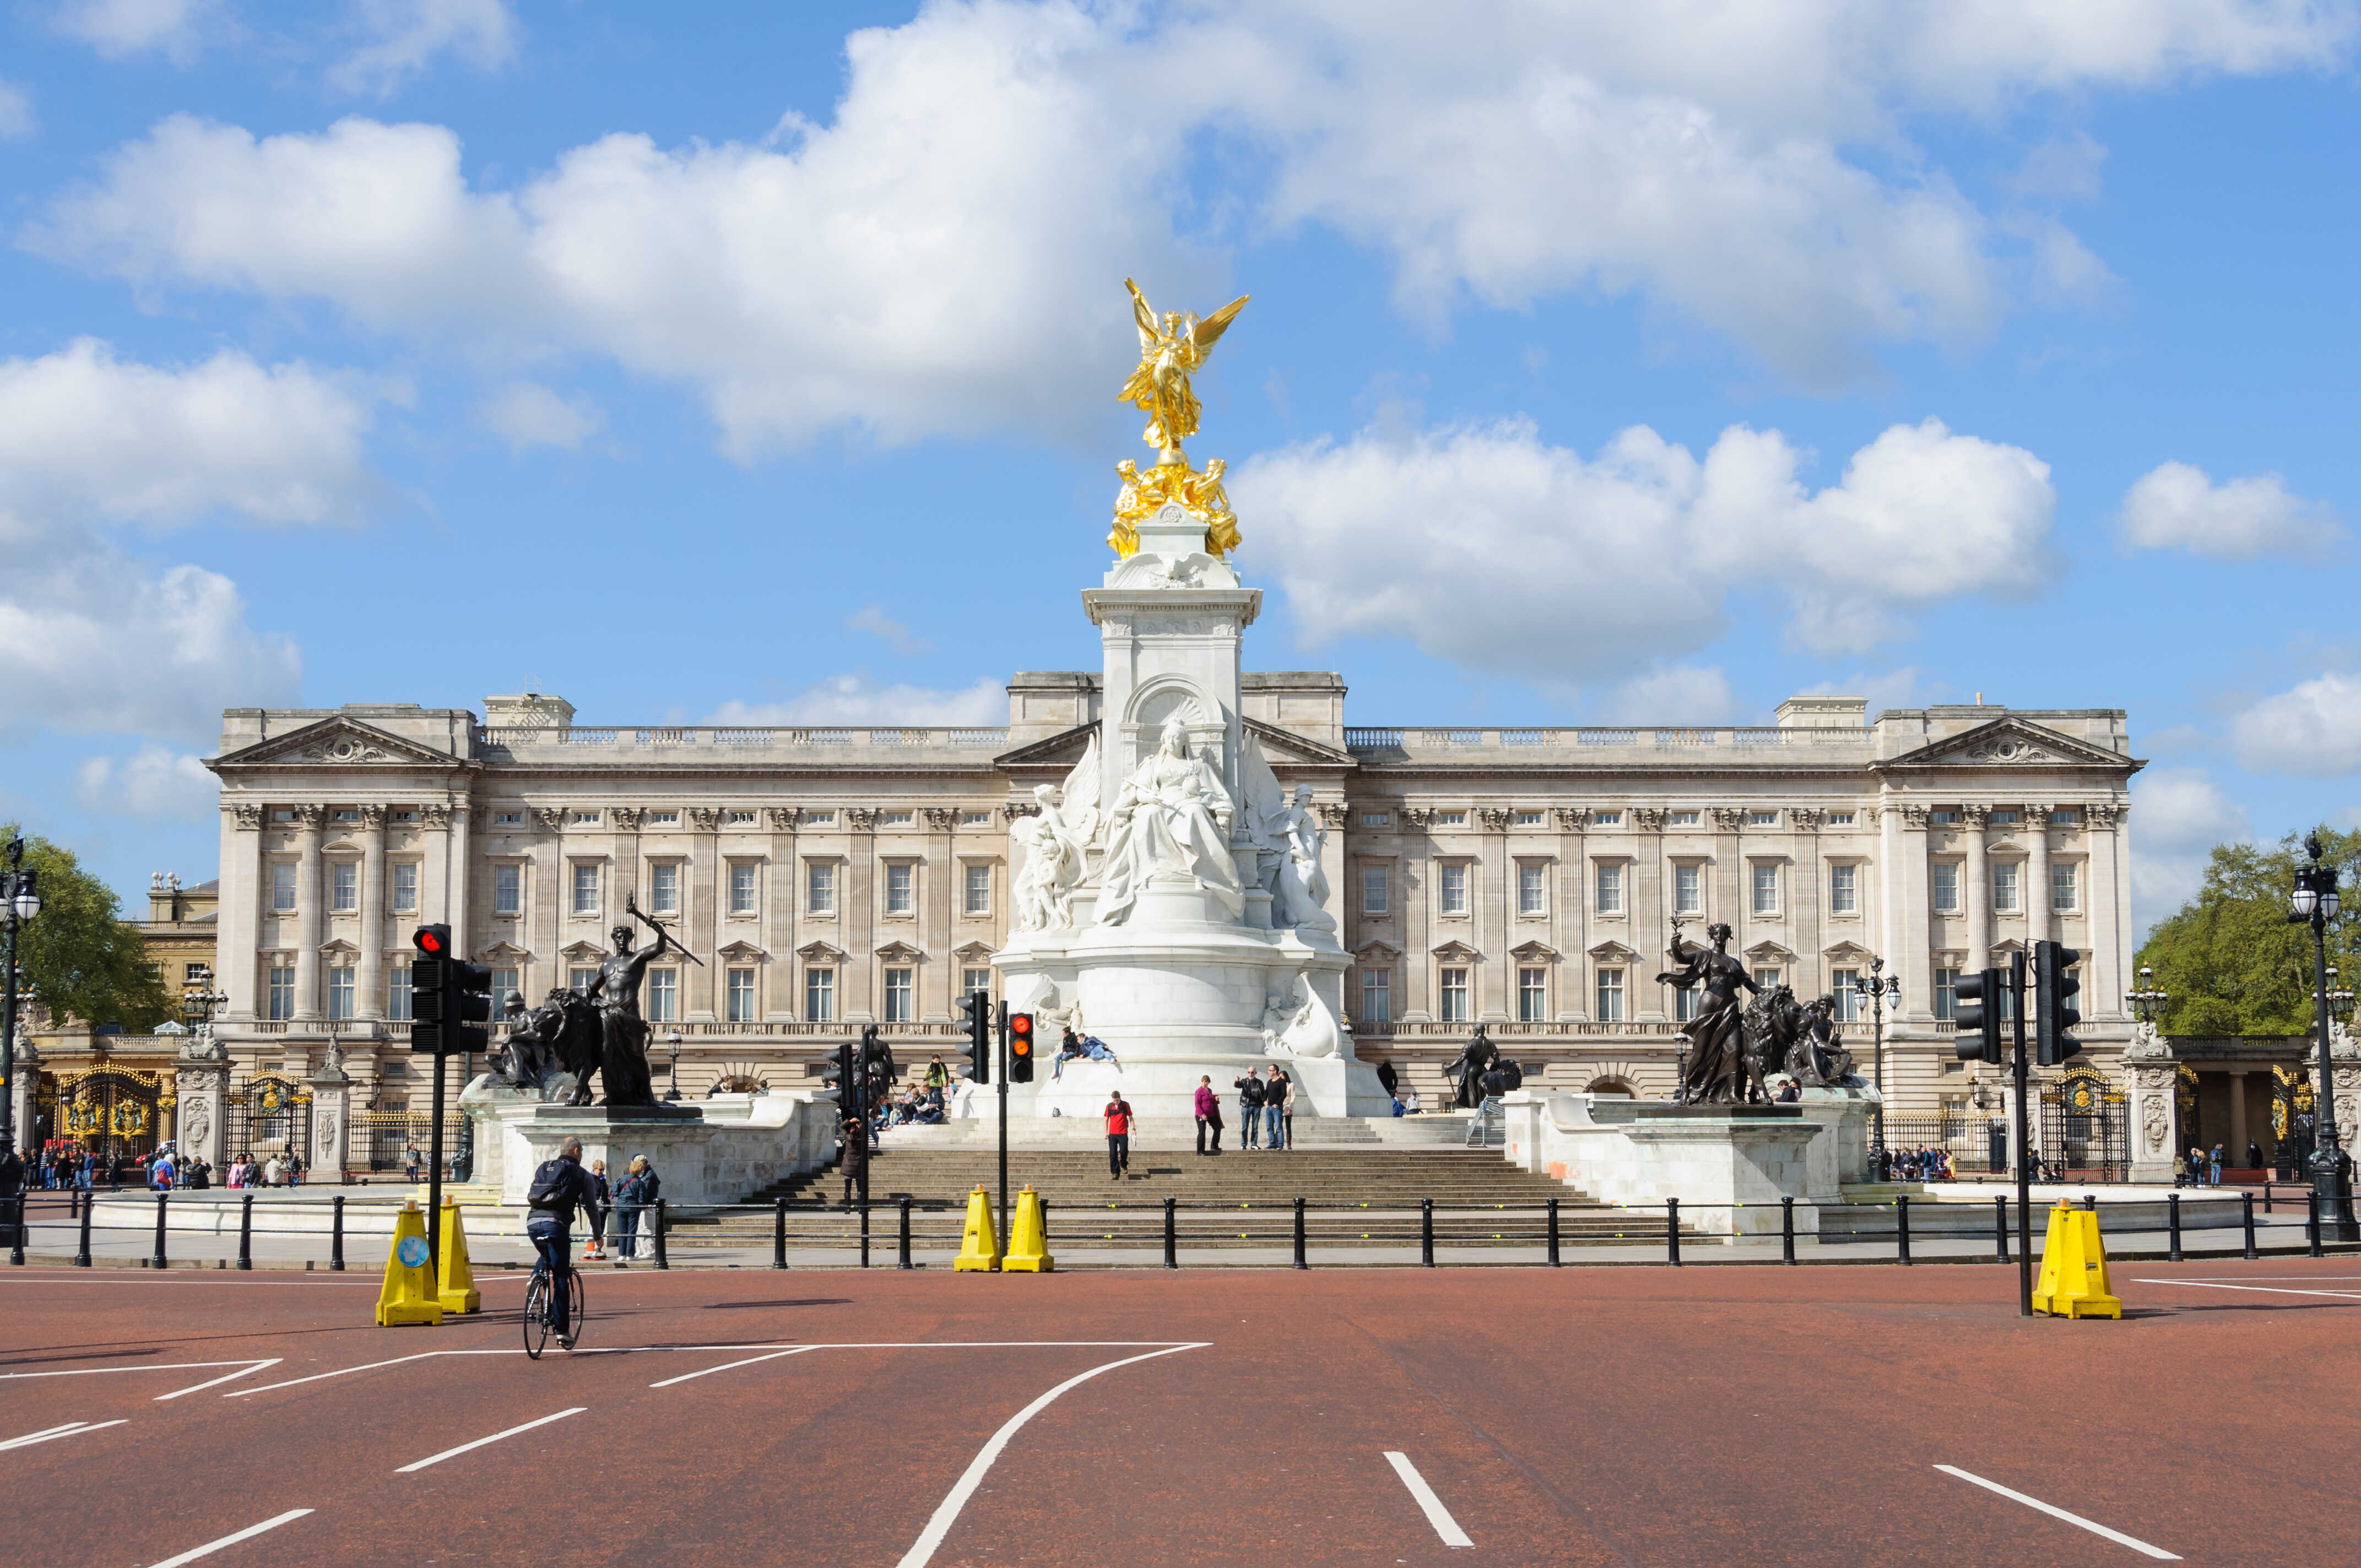 LONDON, UK - CIRCA May 2012: The Queen Victoria Memorial and Buckingham Palace by a sunny day.